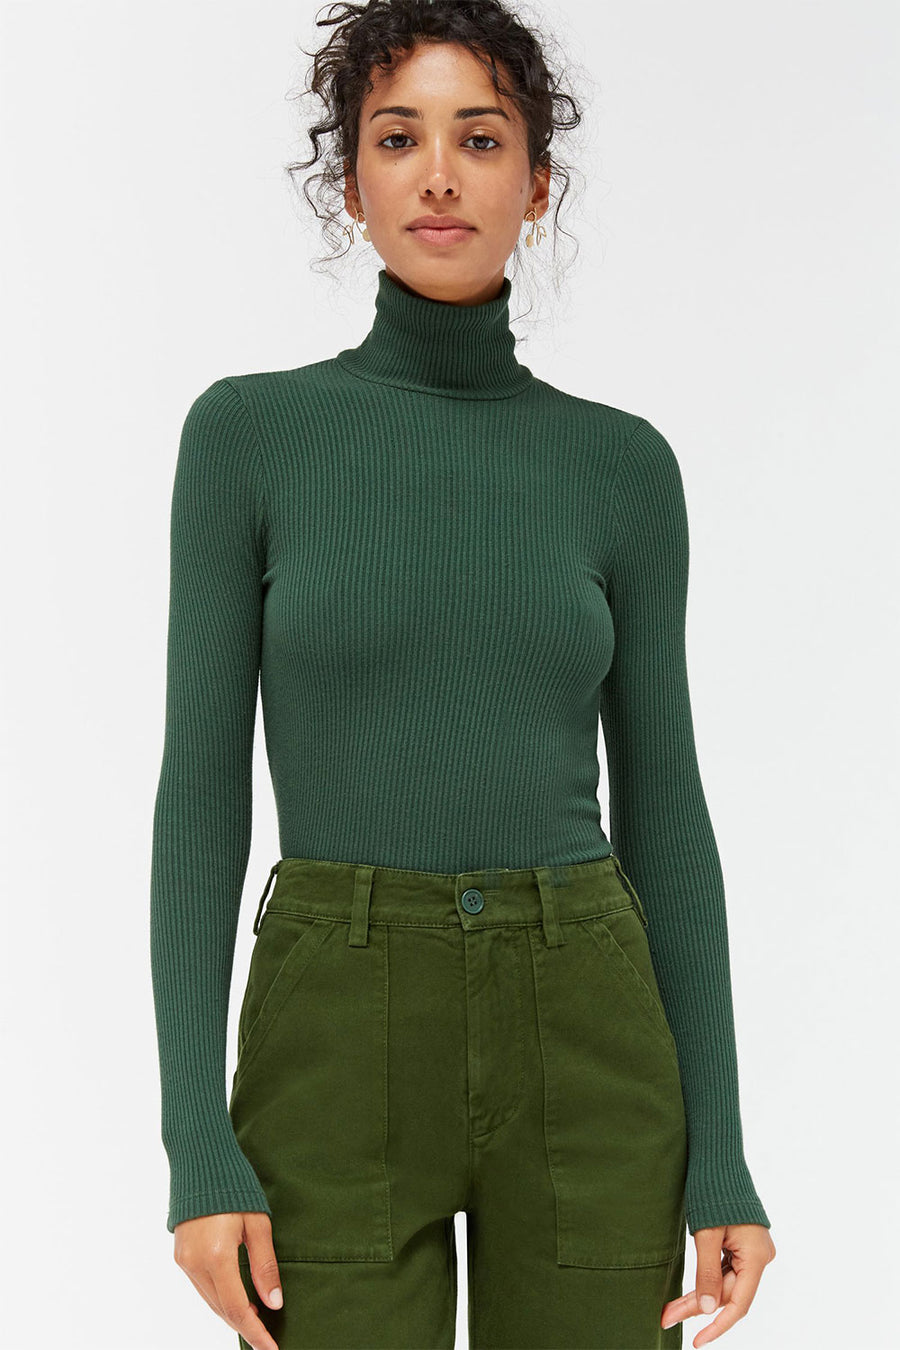 Sweater Rib Turtleneck | Absynthe | Tops NZ | LACAUSA NZ | Black Box Boutique Auckland | Womens Fashion NZ